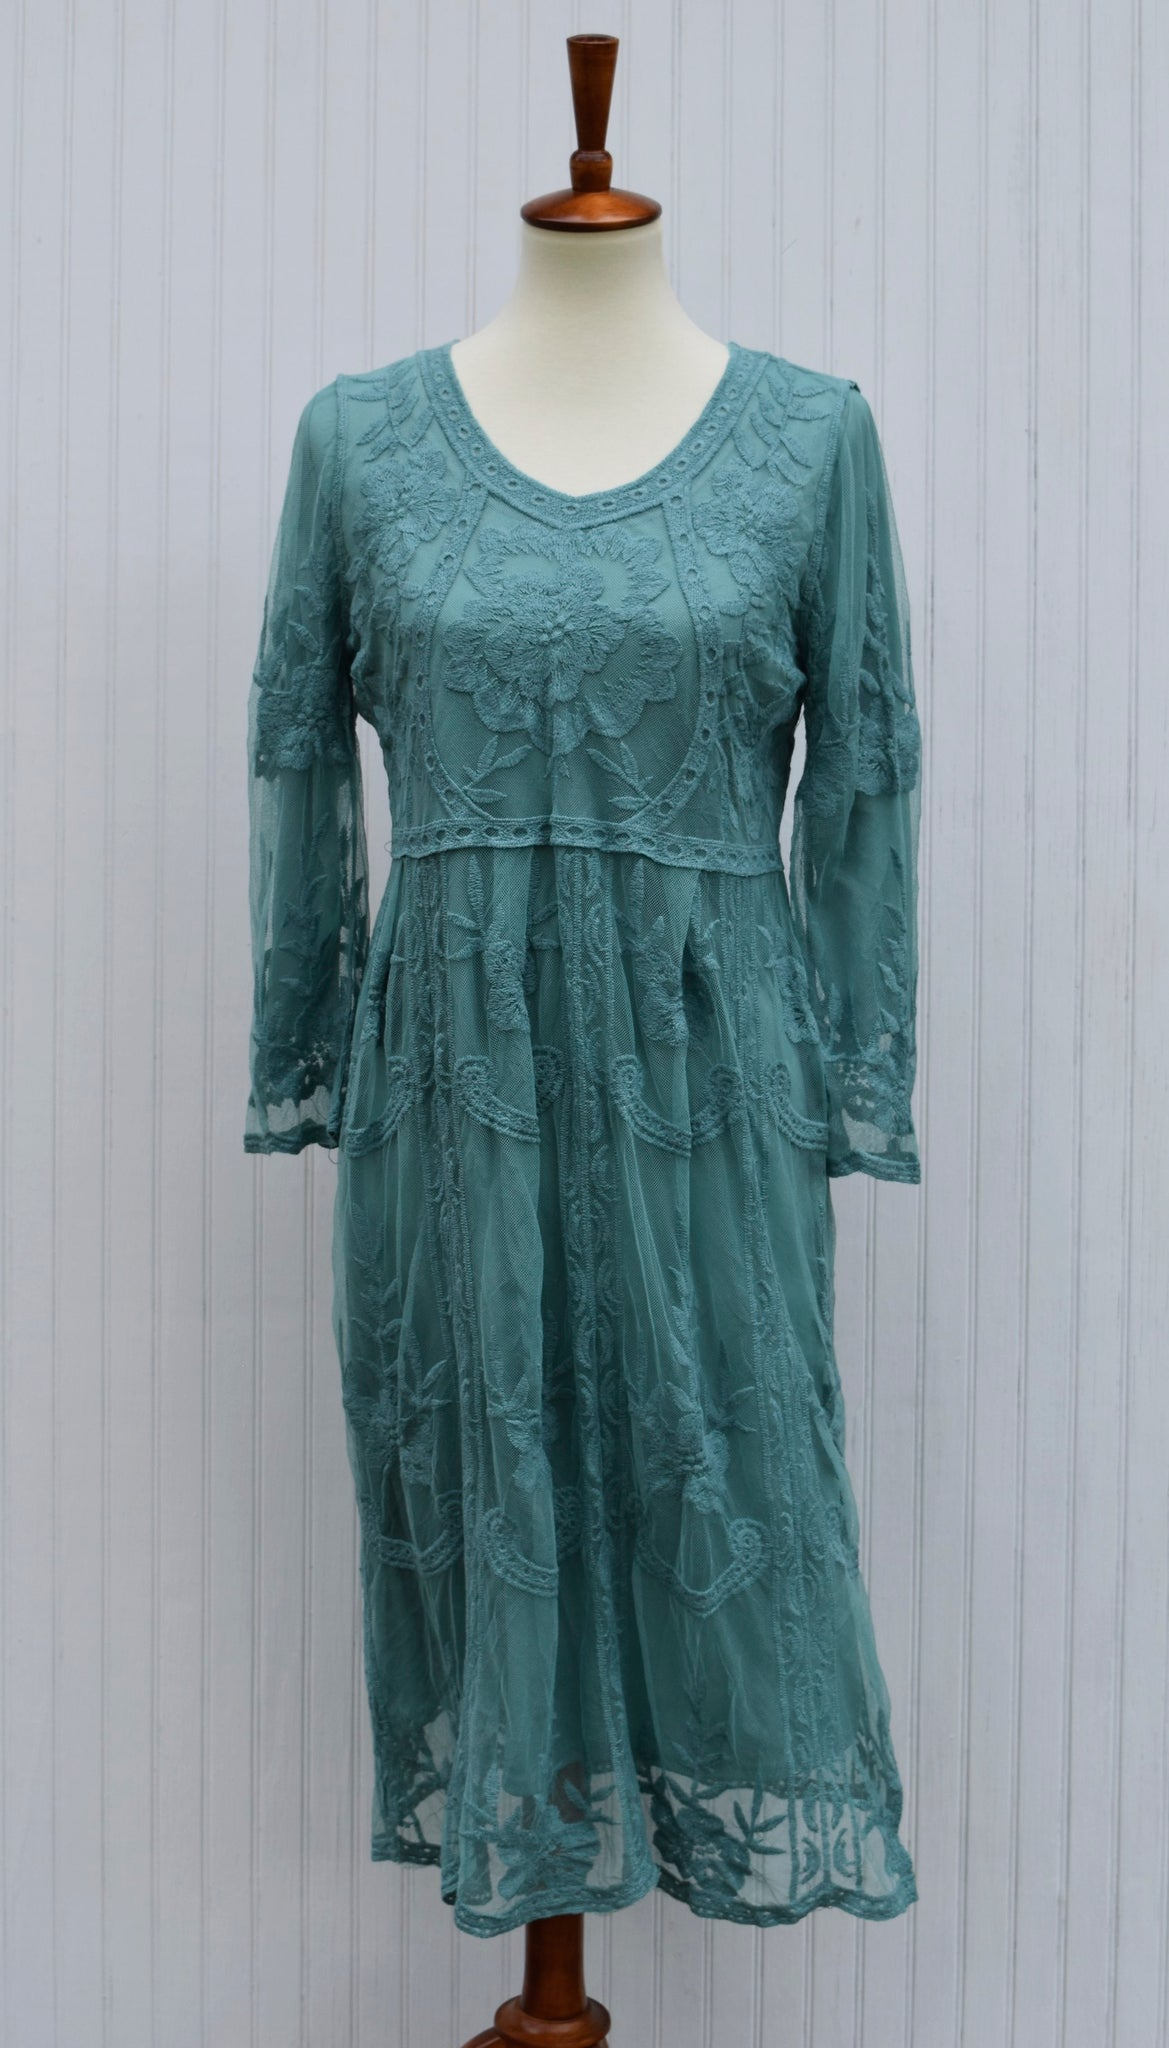 Victoria Lace Dress in Teal